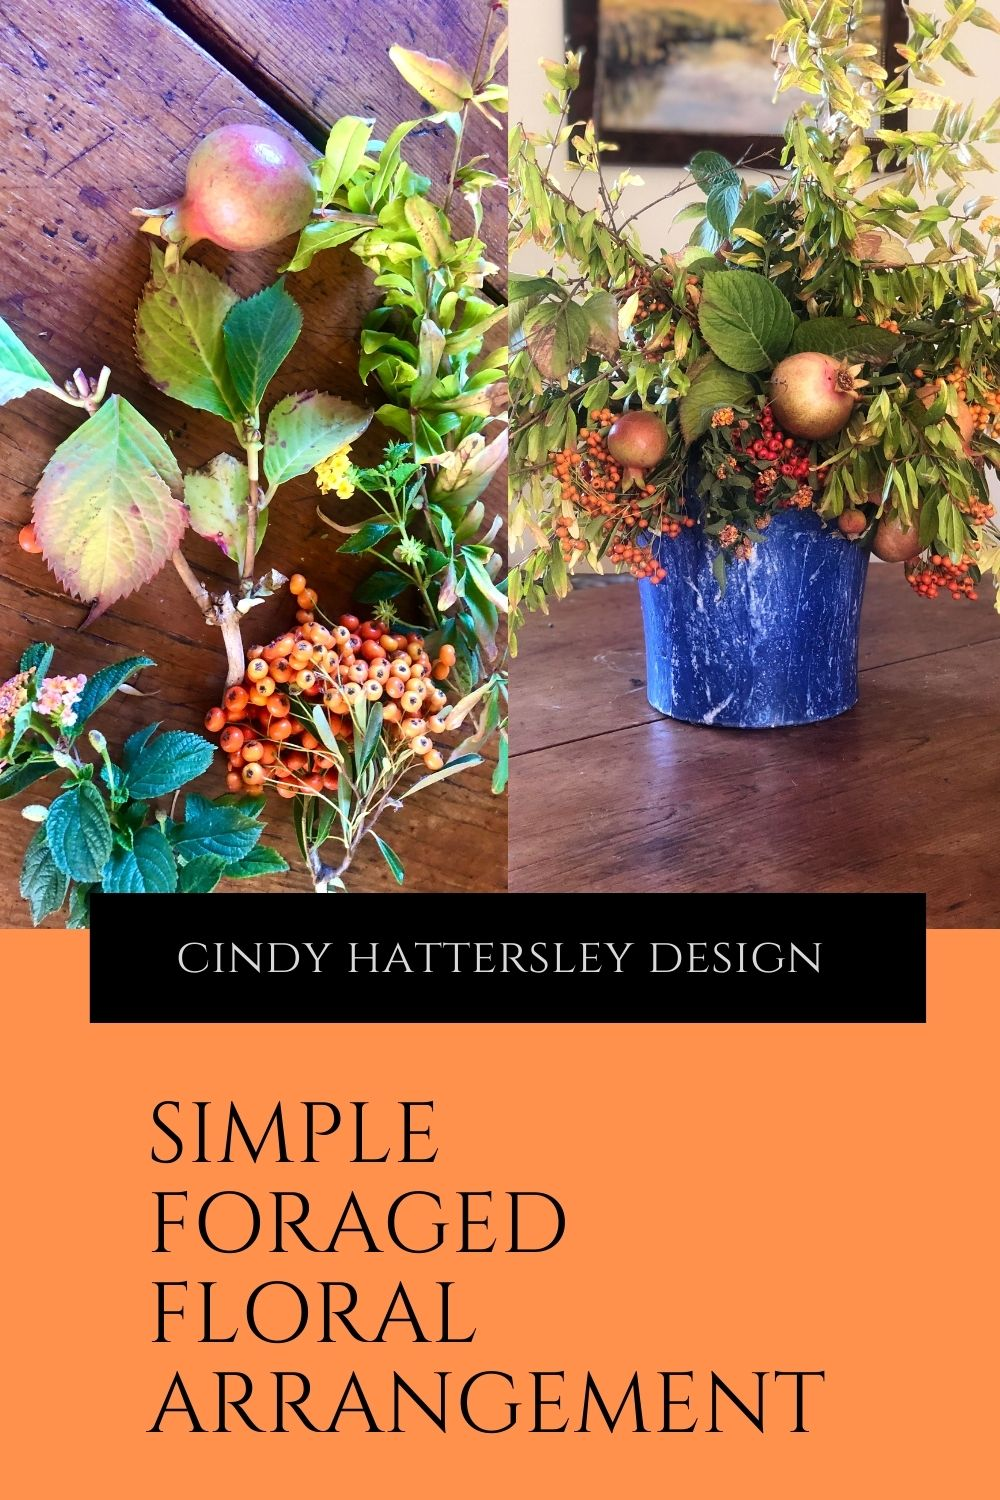 Cindy Hattersley's Cornbread Stuffing and DIY Foraged Floral Fall Arrangement